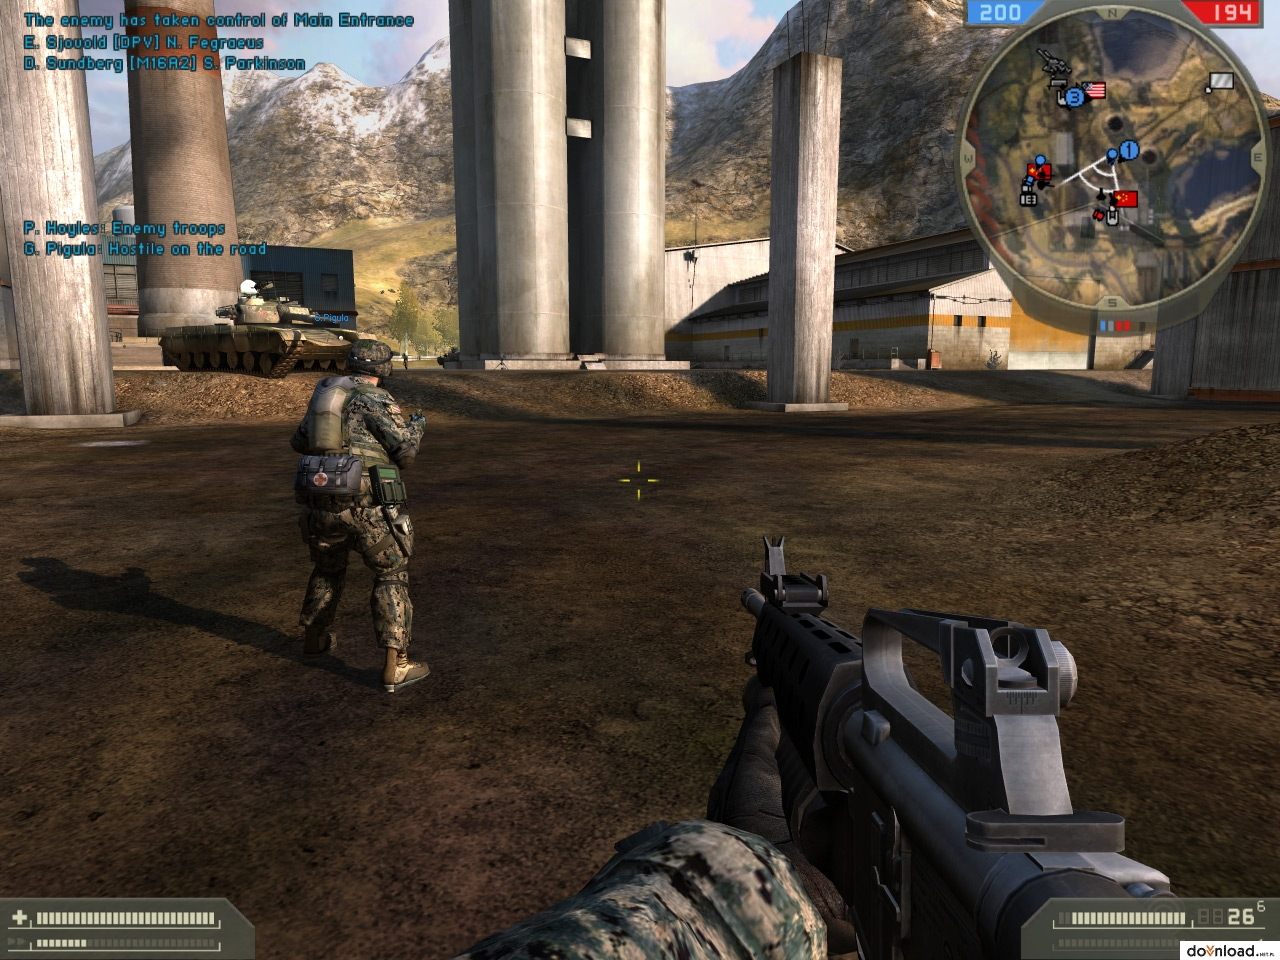 Battlefield 2 Free Download image 2